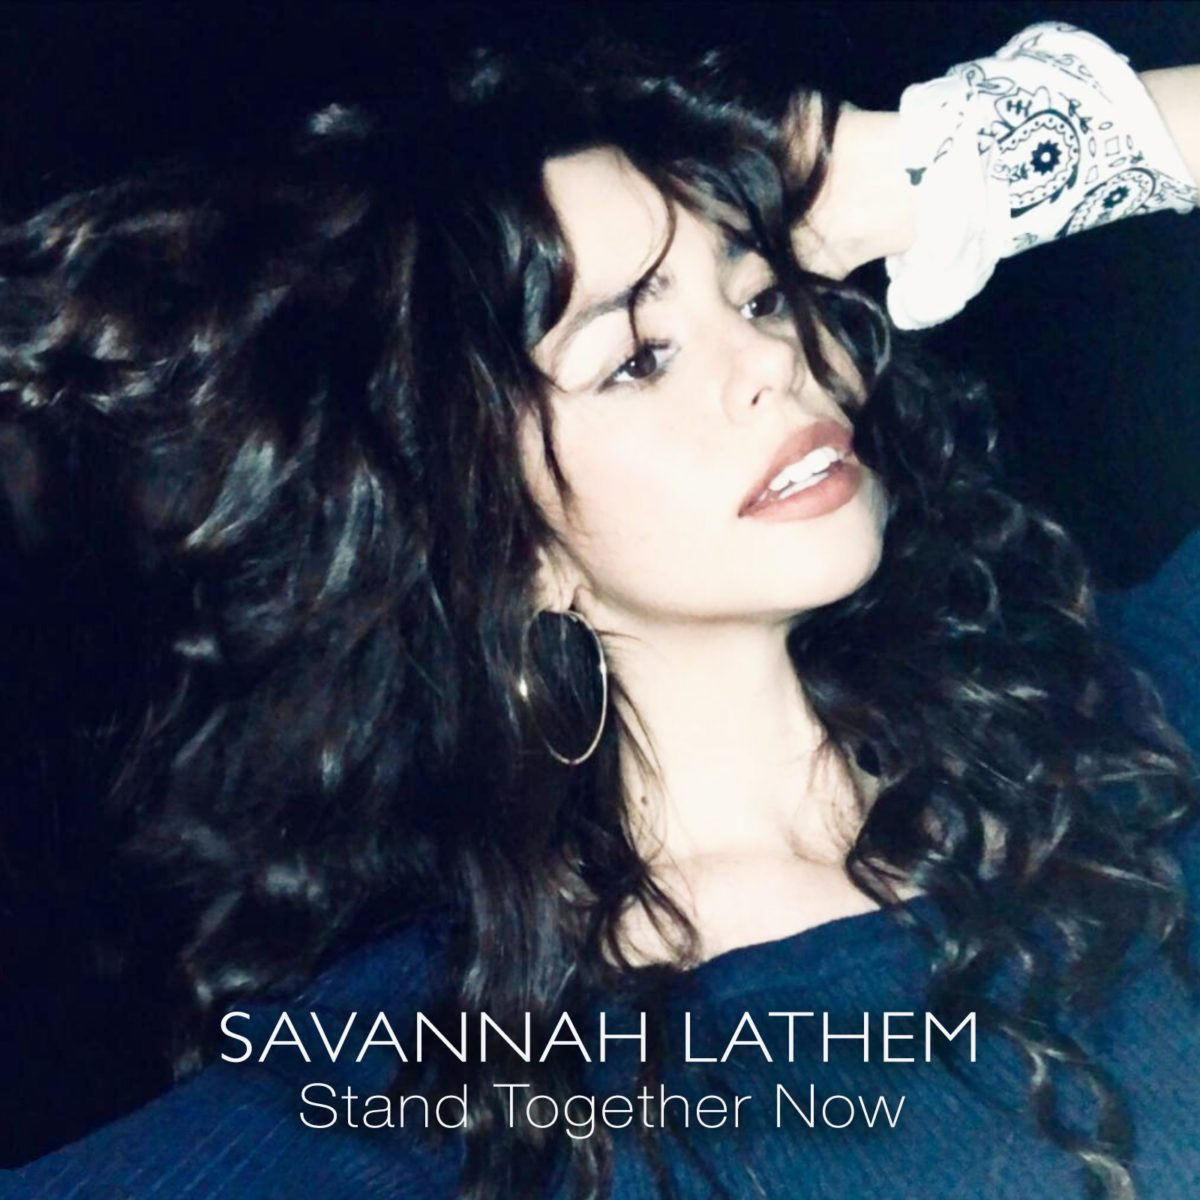 Stand Together Now by Savannah Lathem